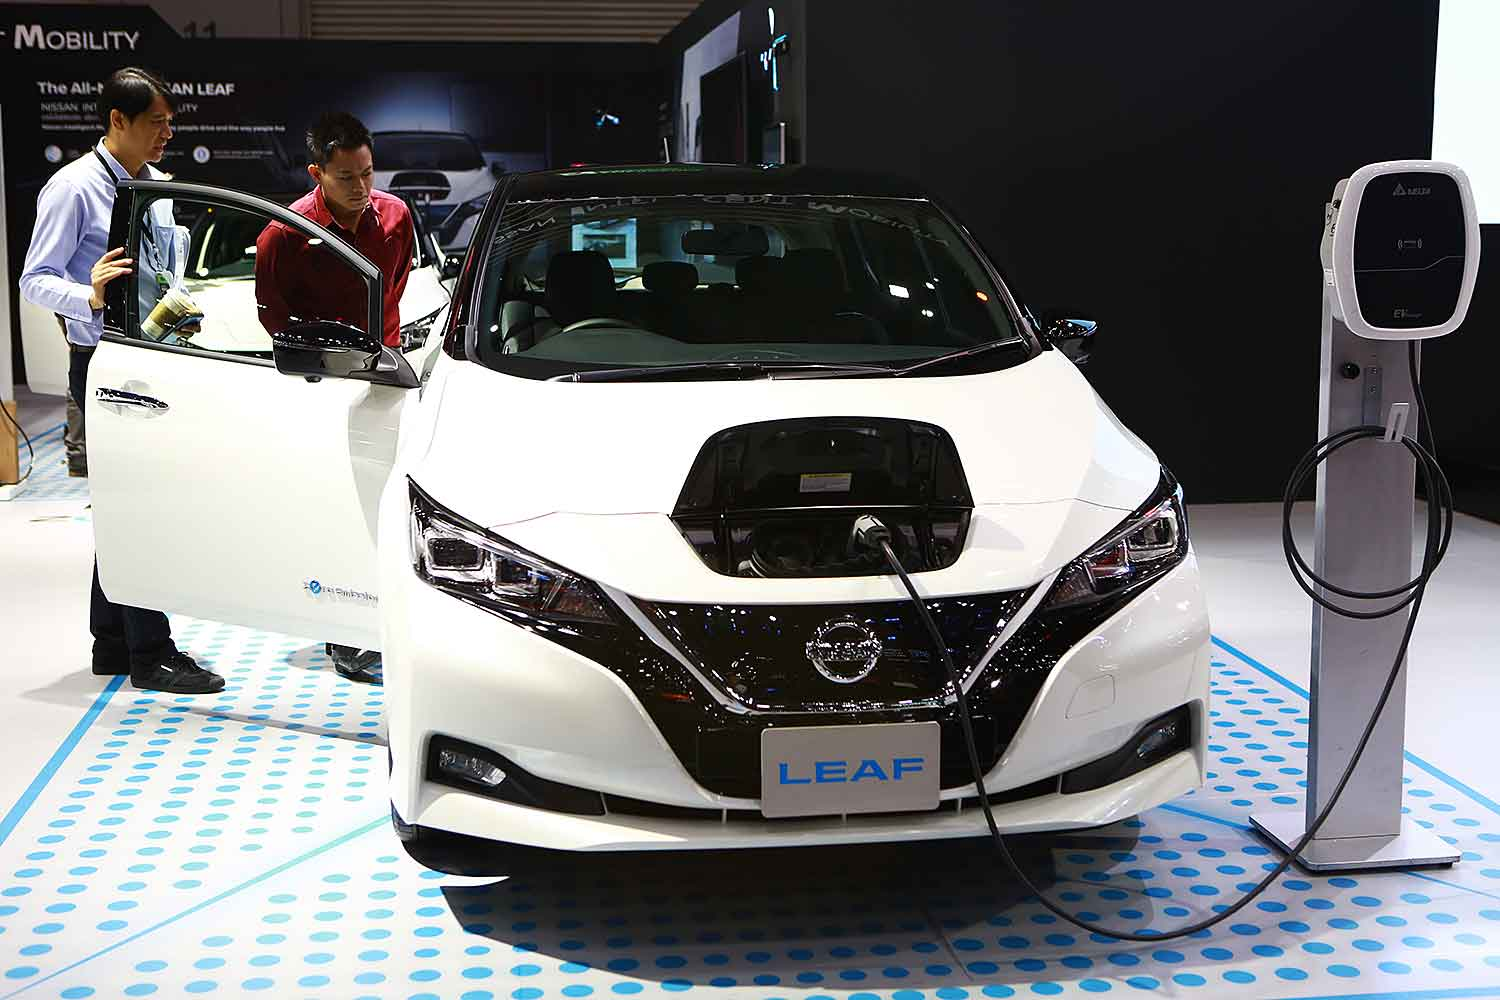 Potential buyers peruse the Nissan Leaf, a battery-powered EV. The EVAT proposed eight actions to promote the EV market, including a personal income tax break for buyers. (Photo by Somchai Poomlard)